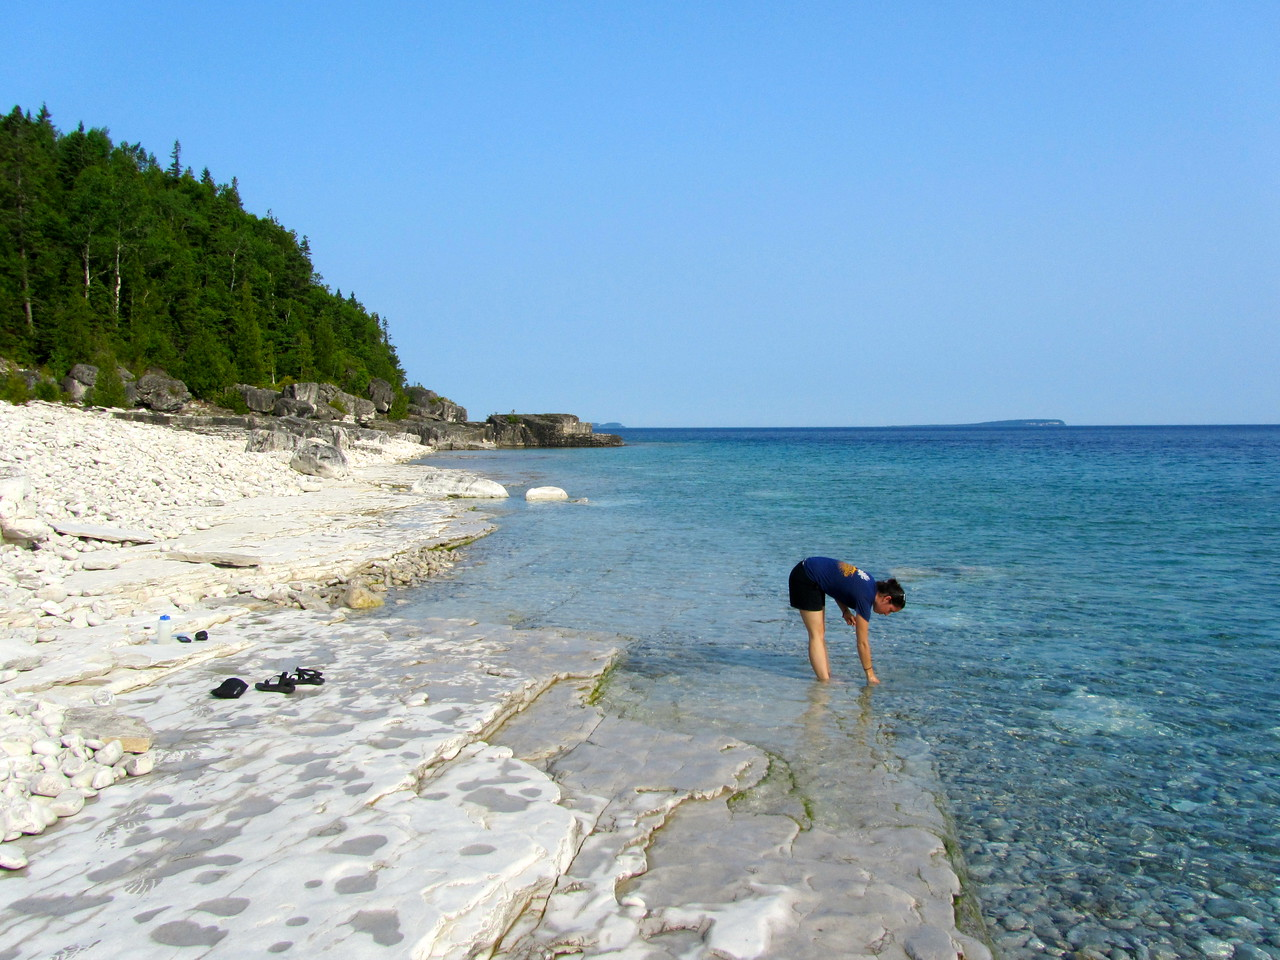 Collecting off the Bruce Peninsula, Kara Steeland